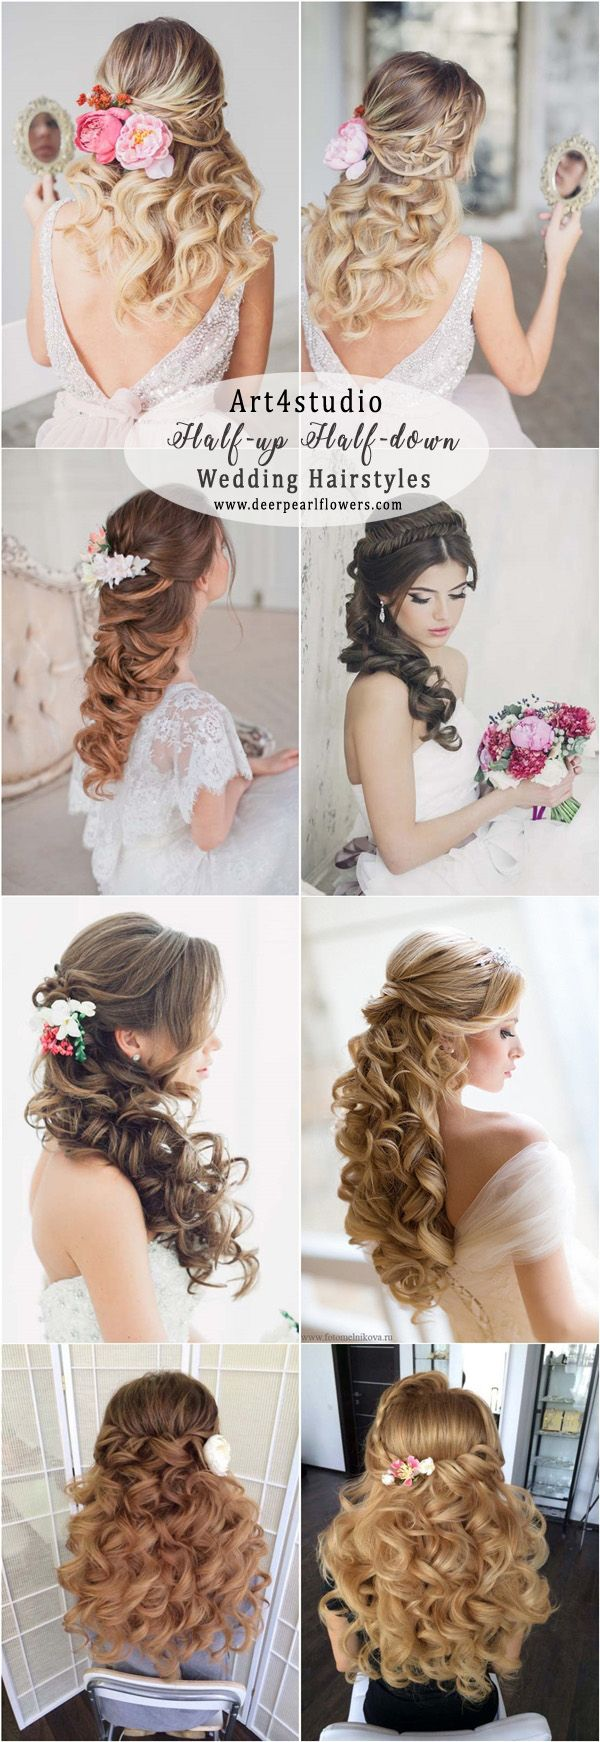 Art4studio half up half down wedding hairstyles #weddings #weddingideas #hairstyles #fashion ❤️ http://www.deerpearlflowers.com/half-up-half-down-wedding-hairstyle-ideas/